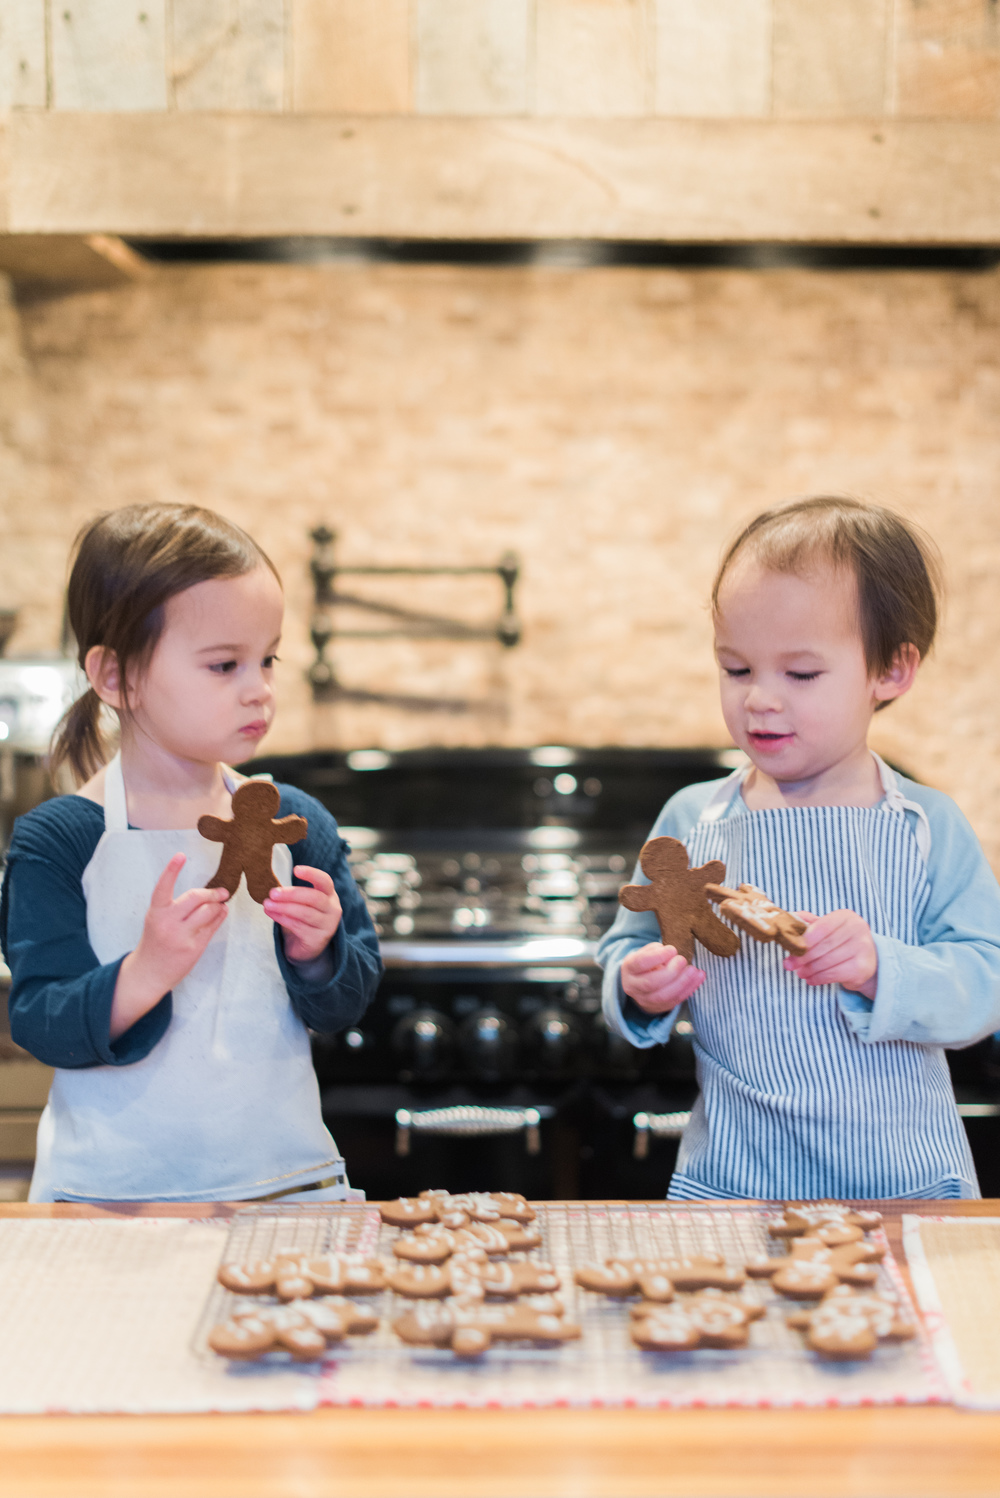 Our favorite little helpers eyeing their freshly baked gingerbread cookies!